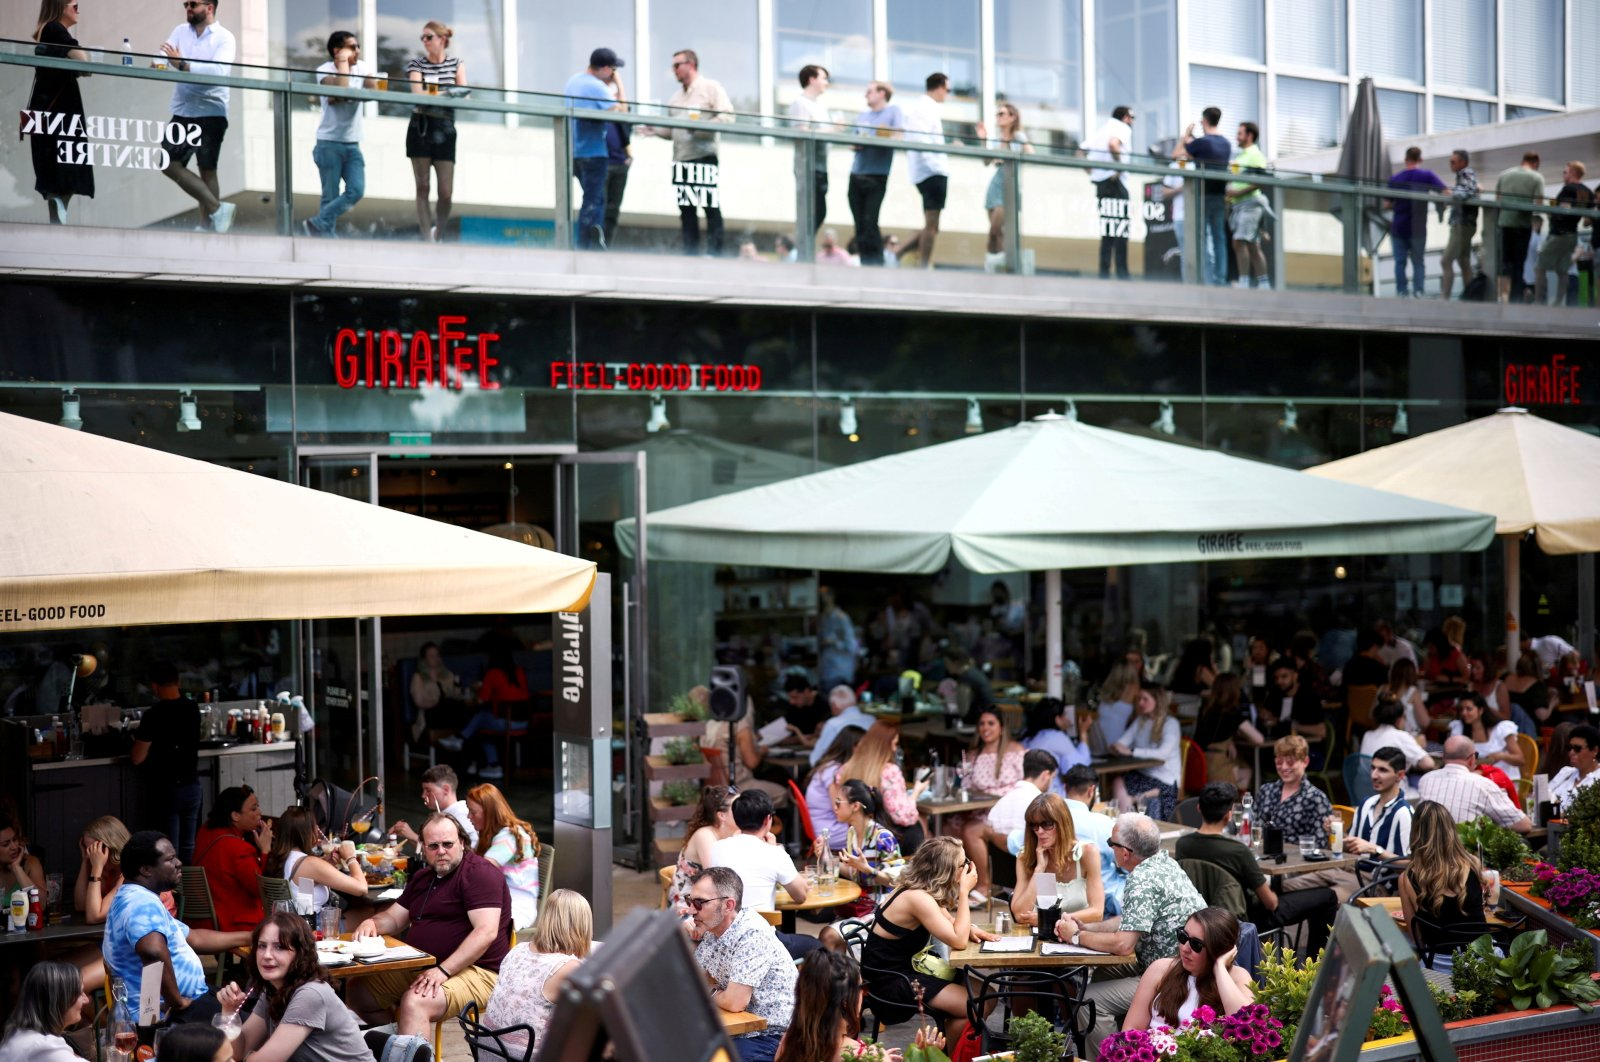 People sit at an outdoor restaurant on the South Bank during sunny weather, amid a COVID-19 outbreak, in London, Britain, June 5, 2021. (Reuters Photo)